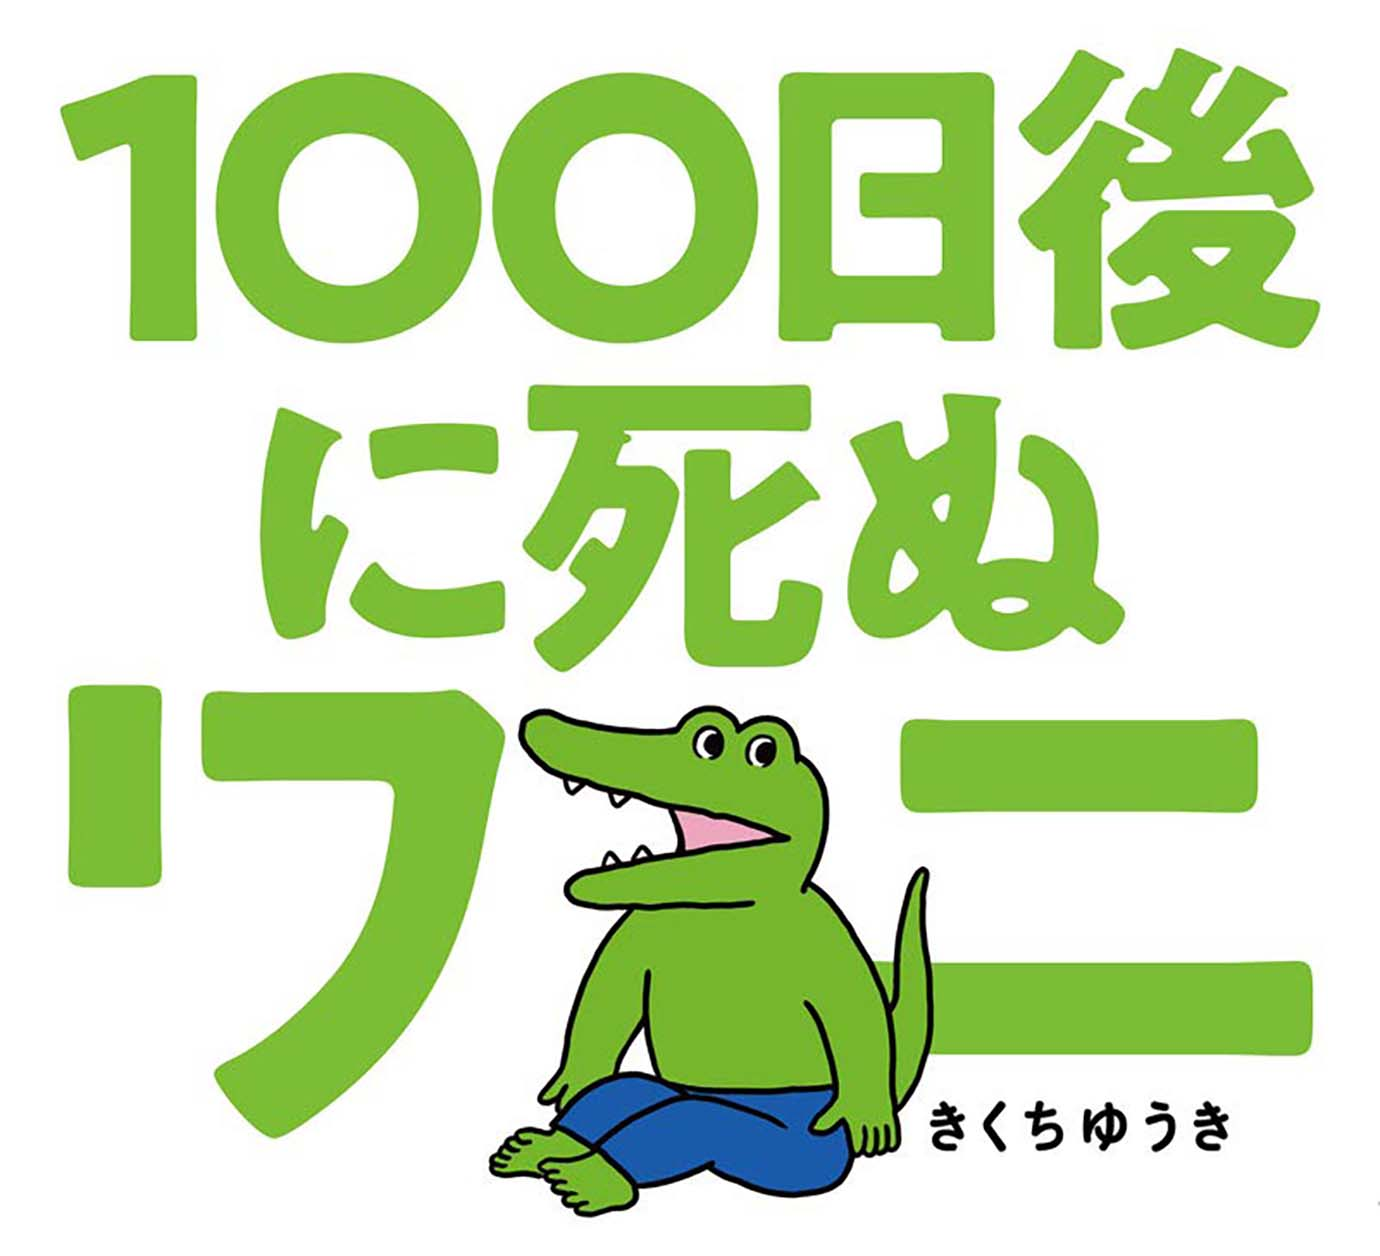 crocodile-dies-after-100-days